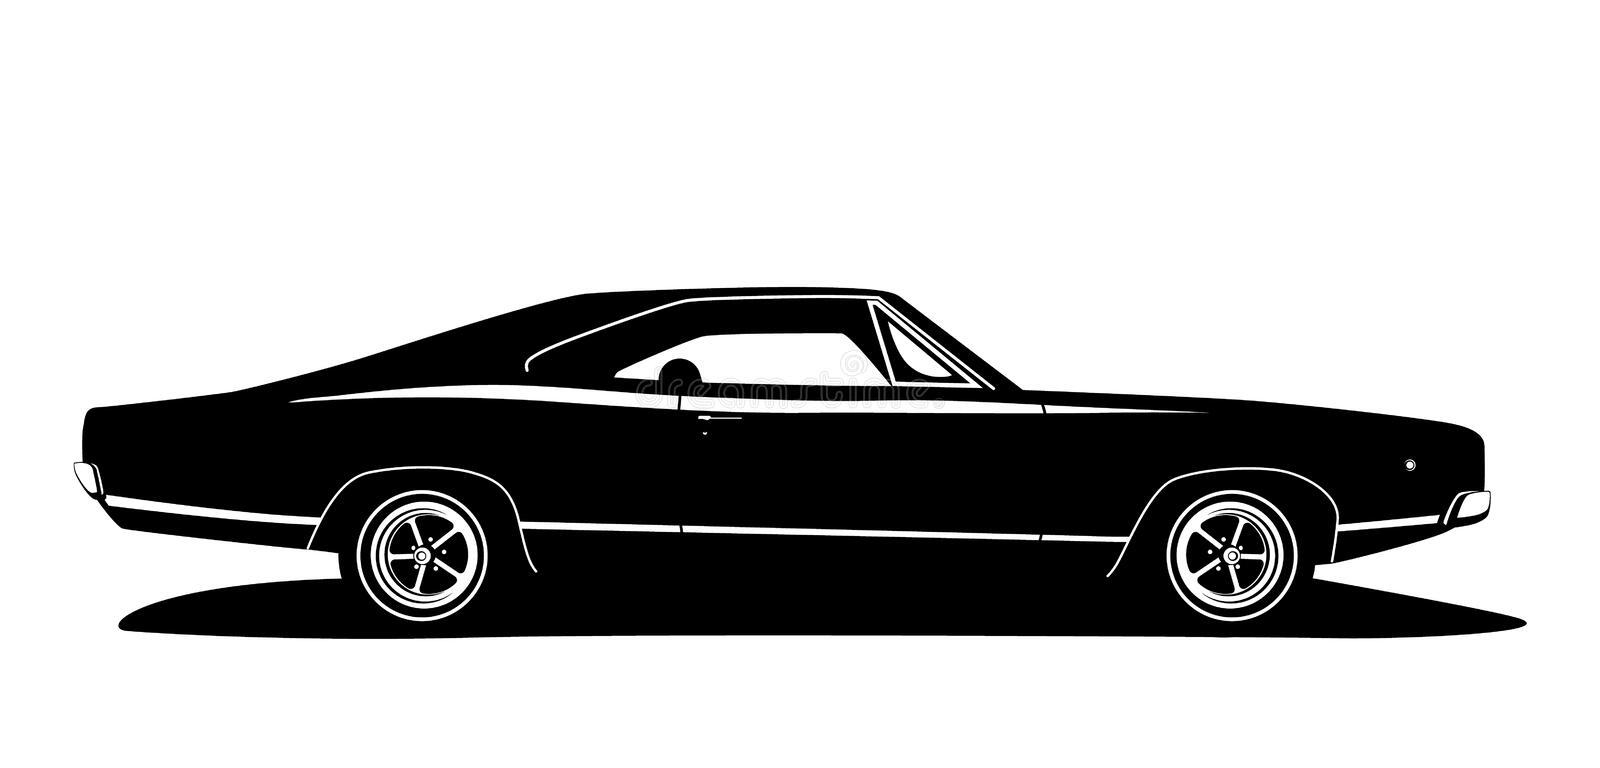 Vector american muscle car profile. Classic vehicle graphics design. Hot rod silhouette black and white. Cars label for web logo, print production stock illustration